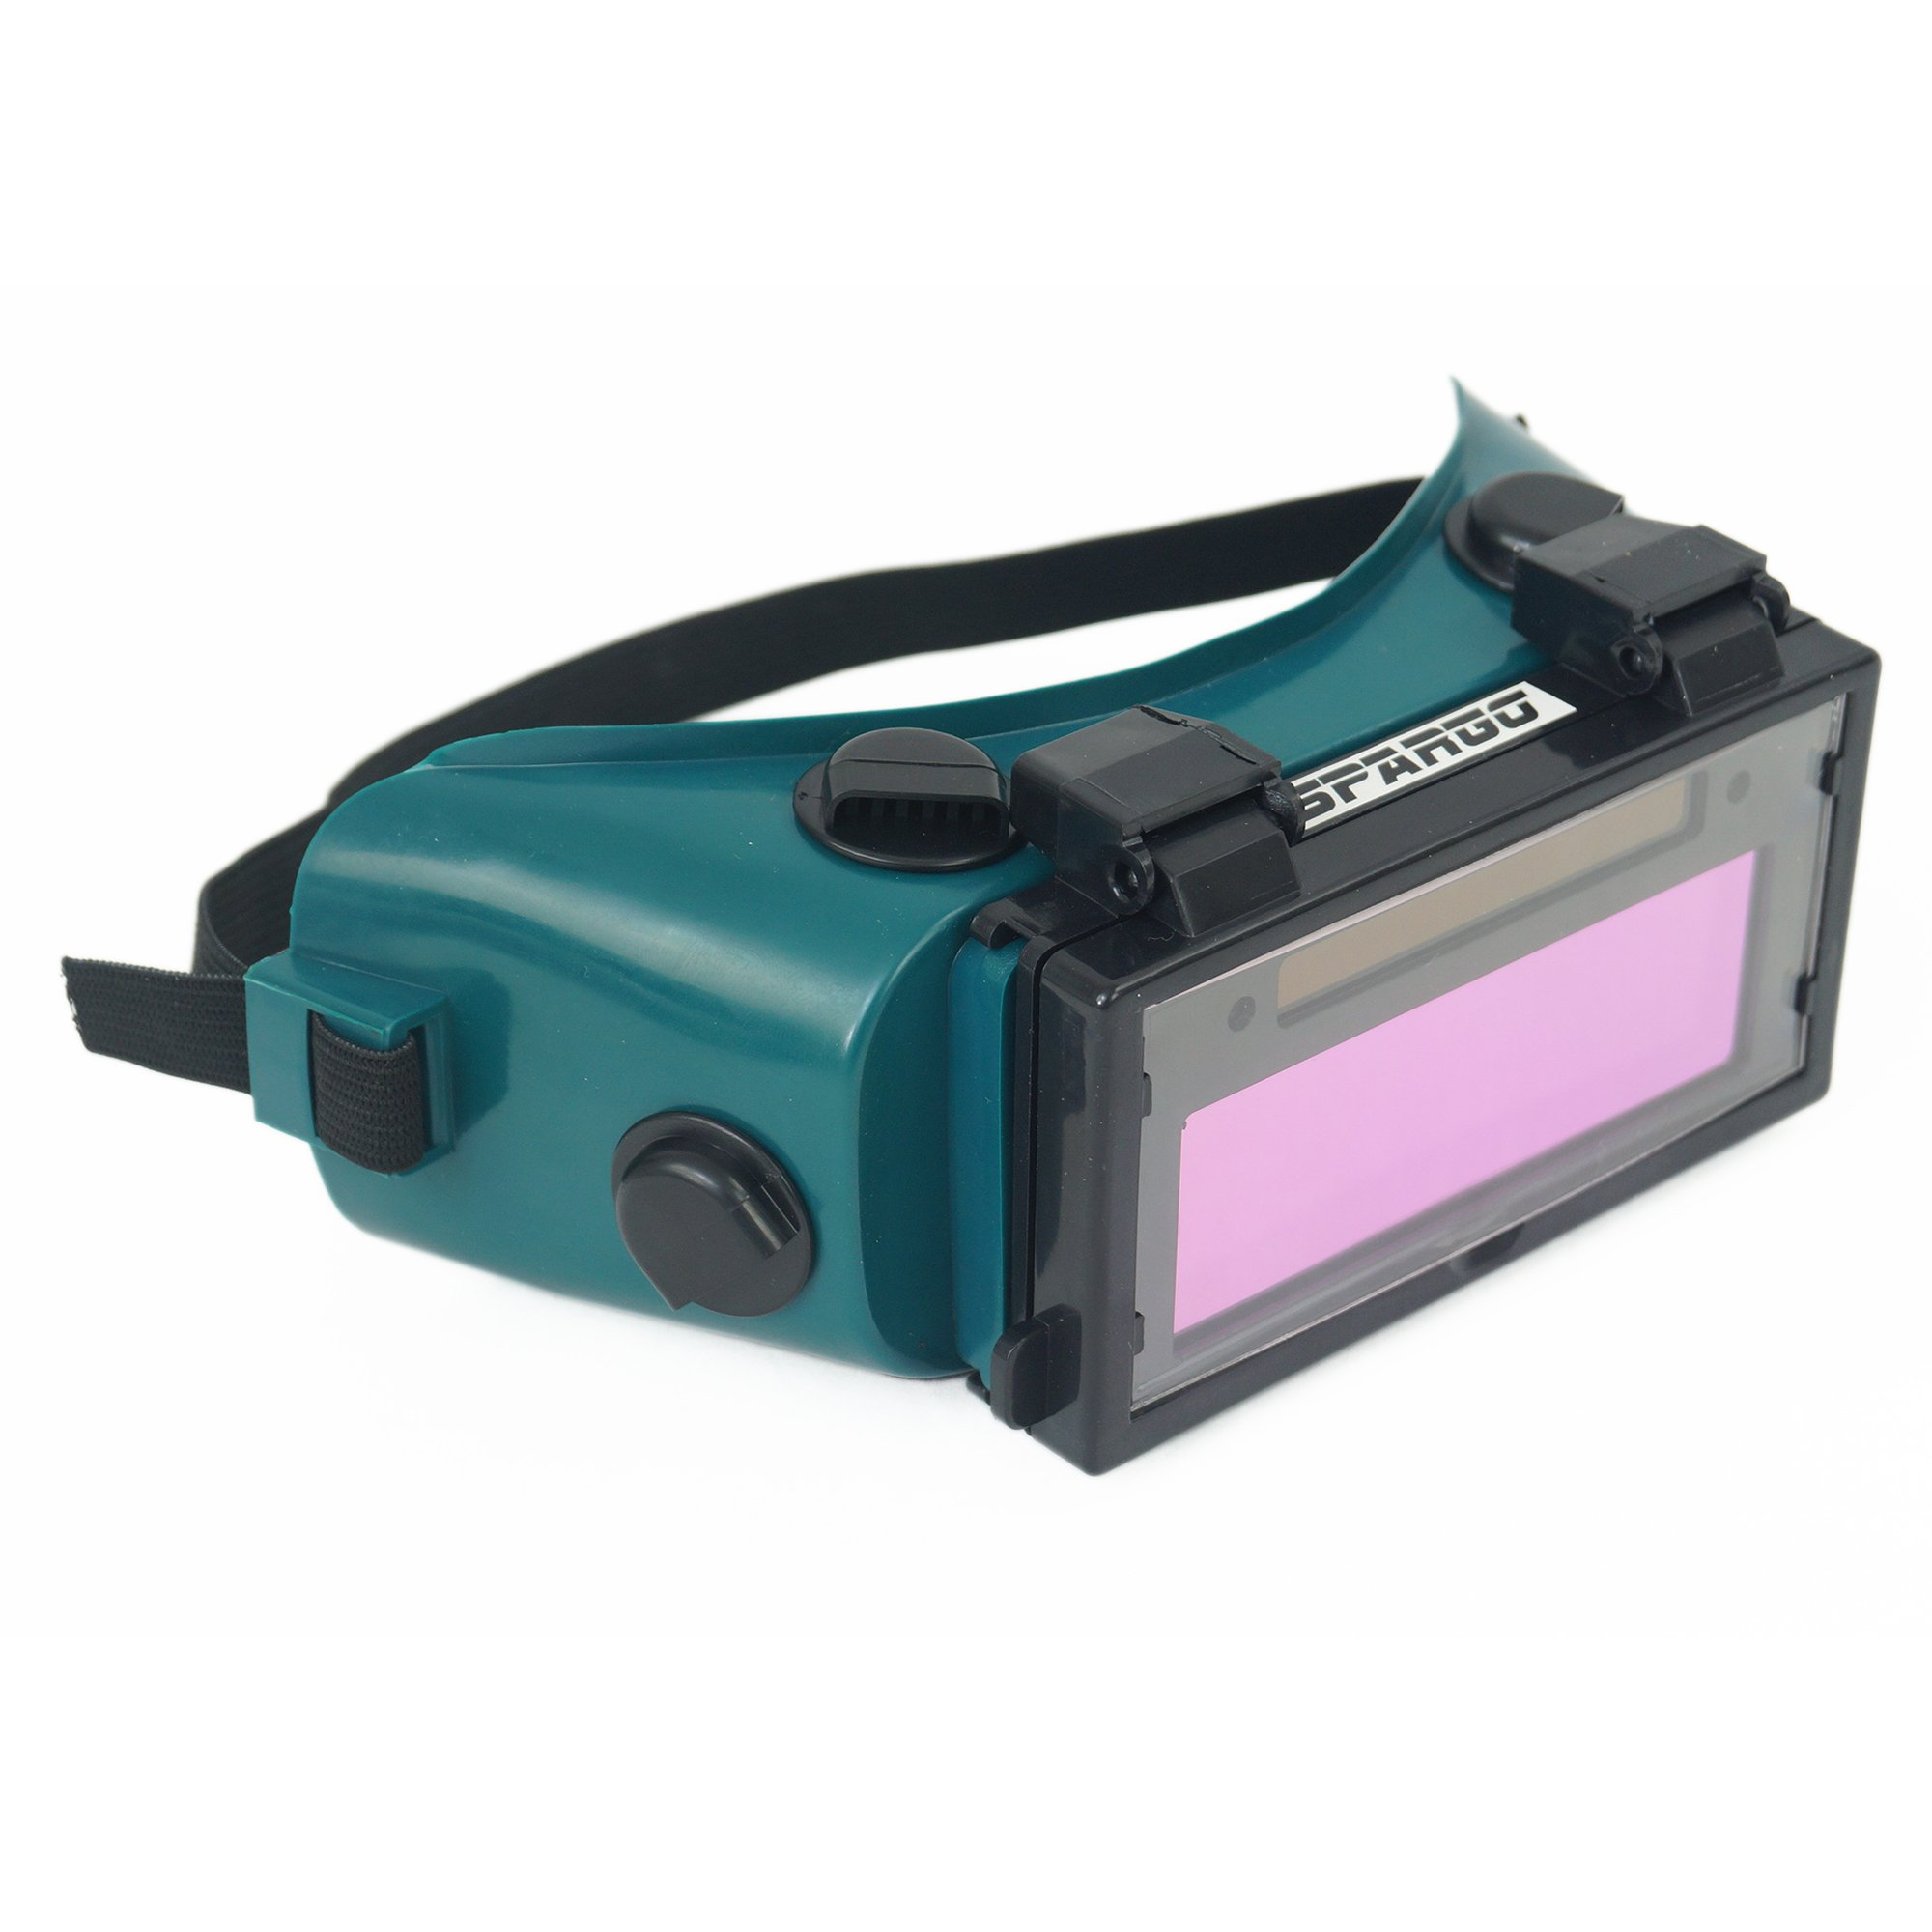 Spargo Auto Darkening LCD Welding Helmet Mask Goggles Solar Welder Eyes Glasses Gas Flip Up Lens Eye Protection